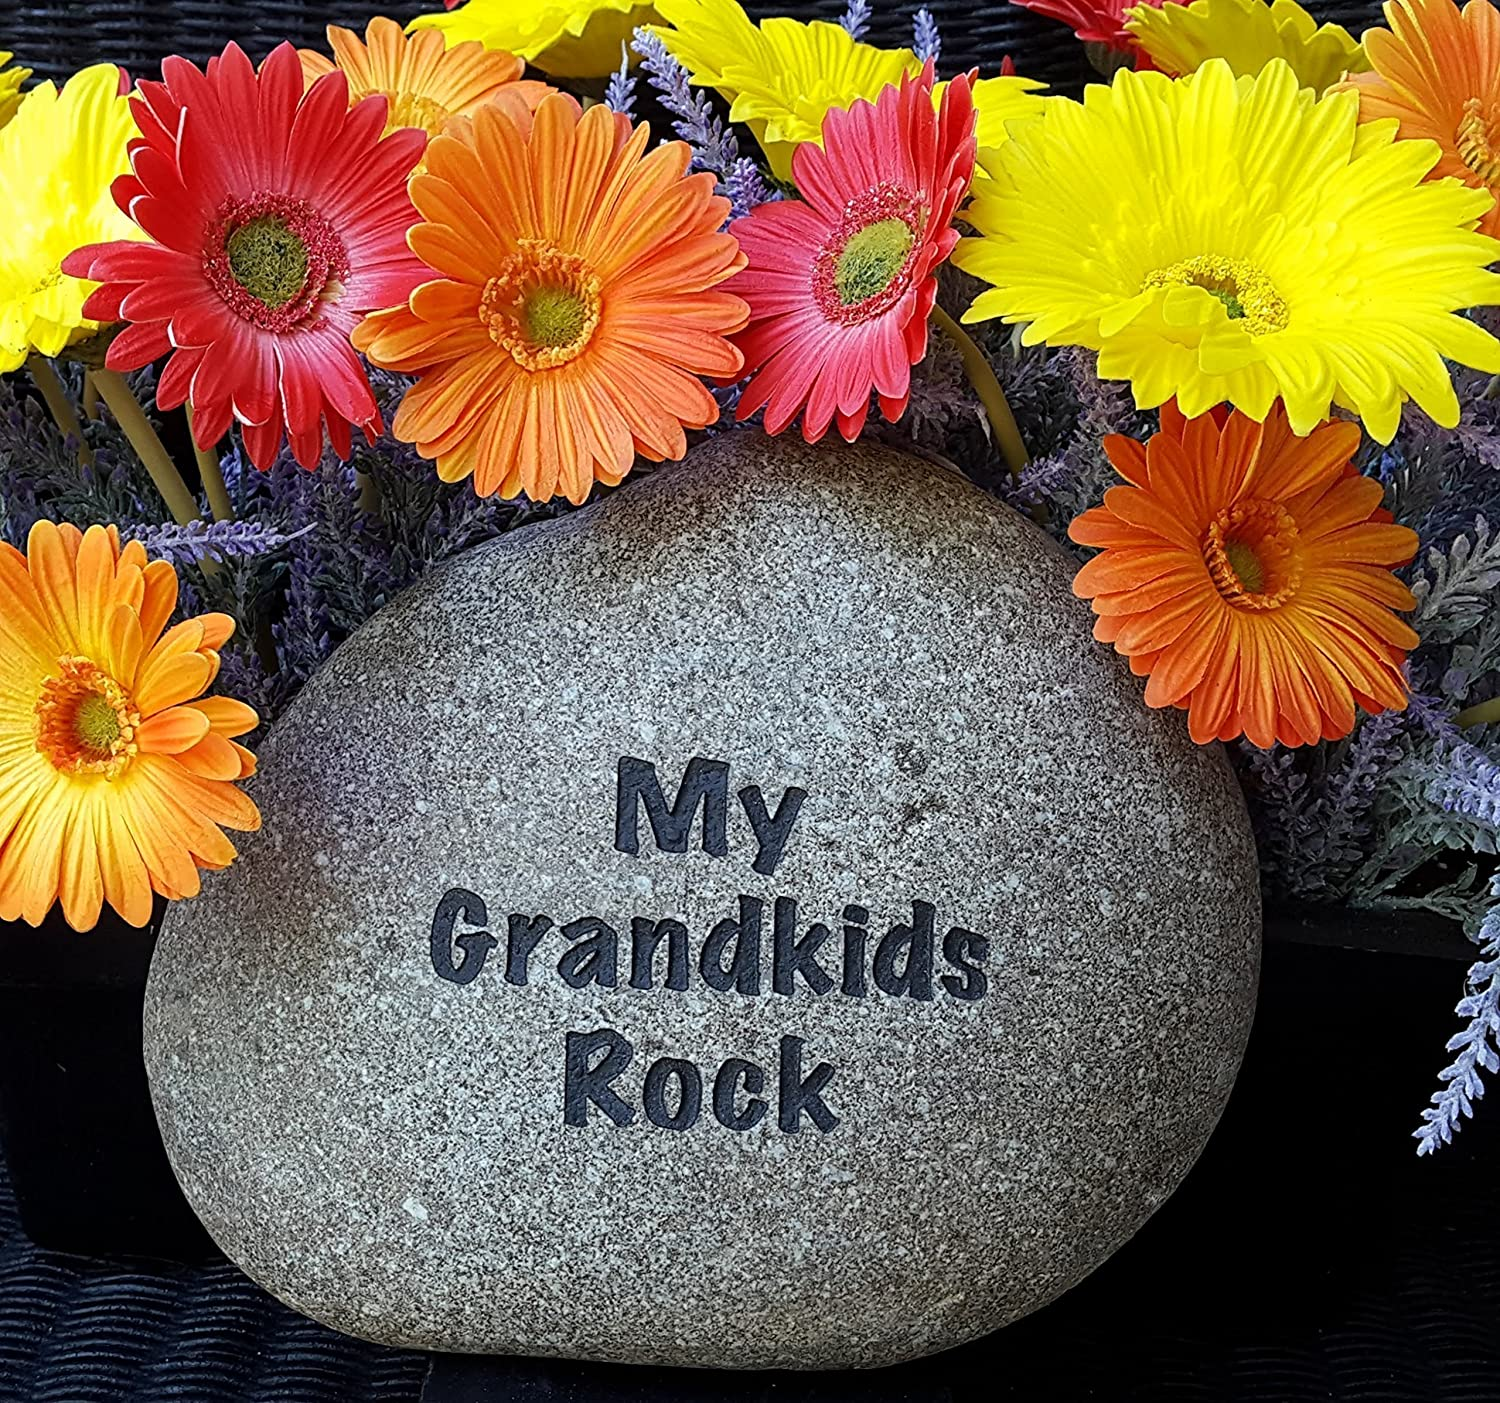 God Rocks My Grandkids Rock Engraved Garden Stone